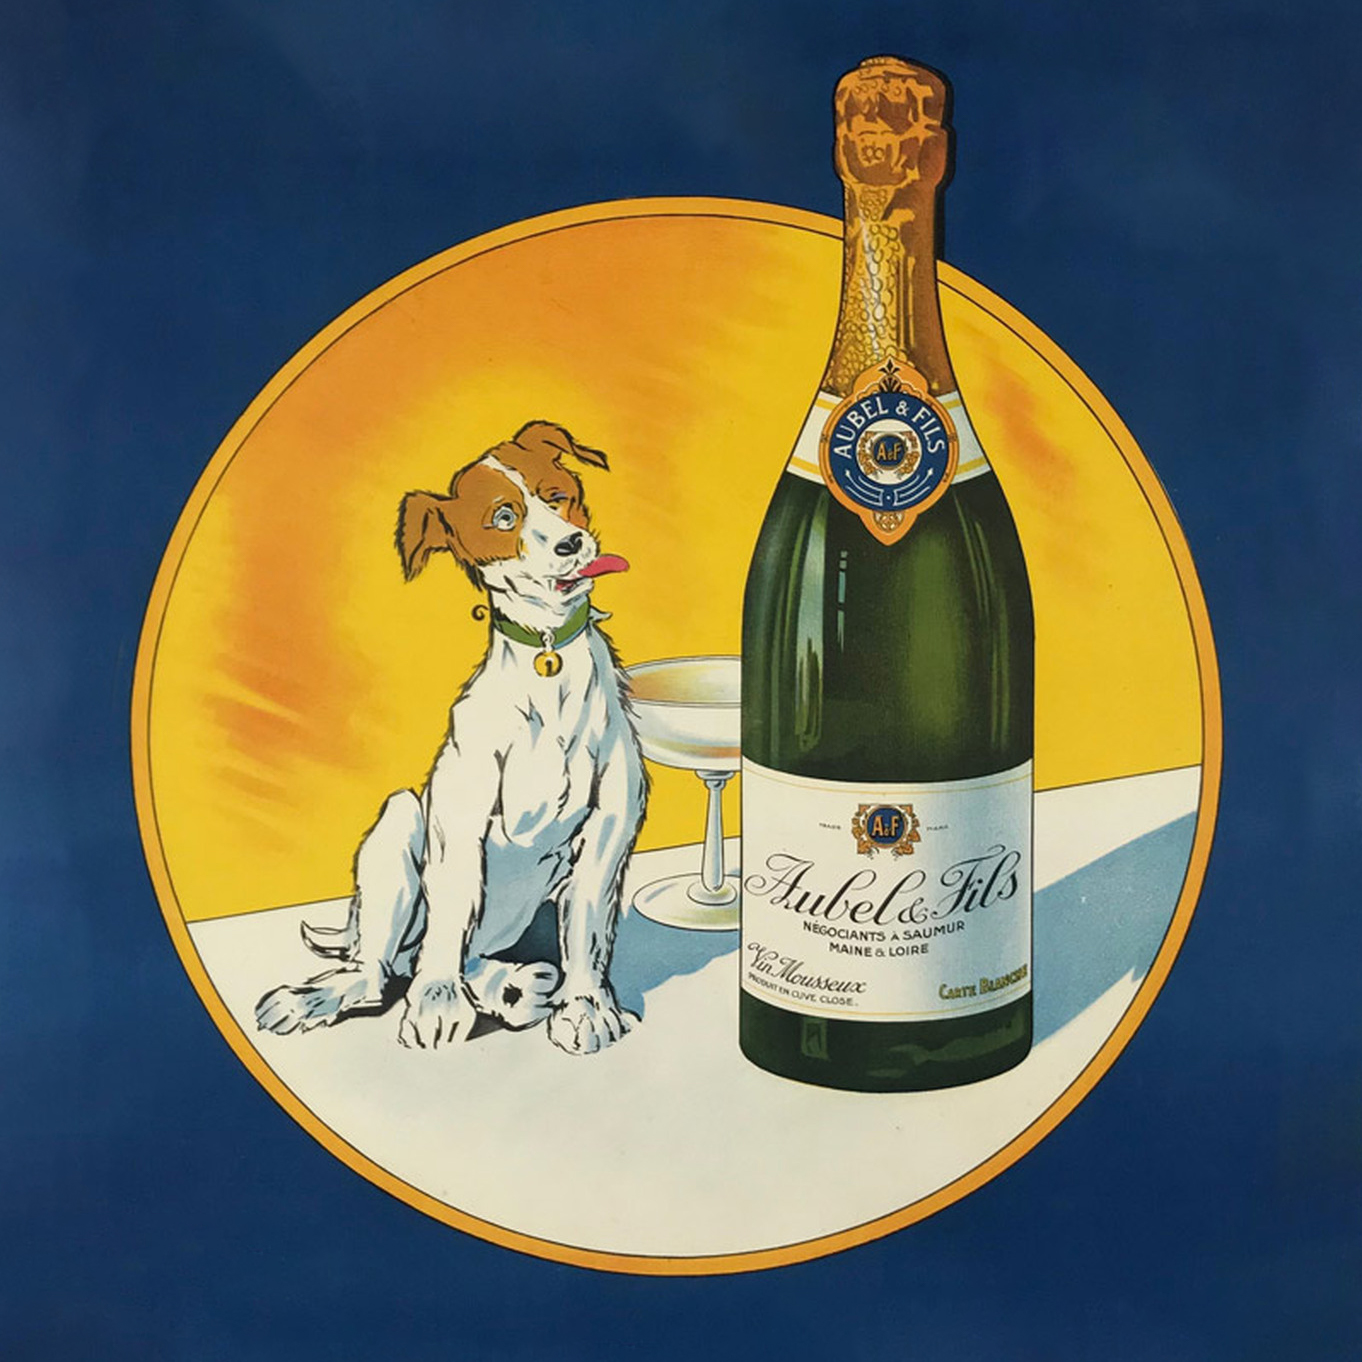 Image of a dog sitting near the bottle of champaign set in a circle on a navy background